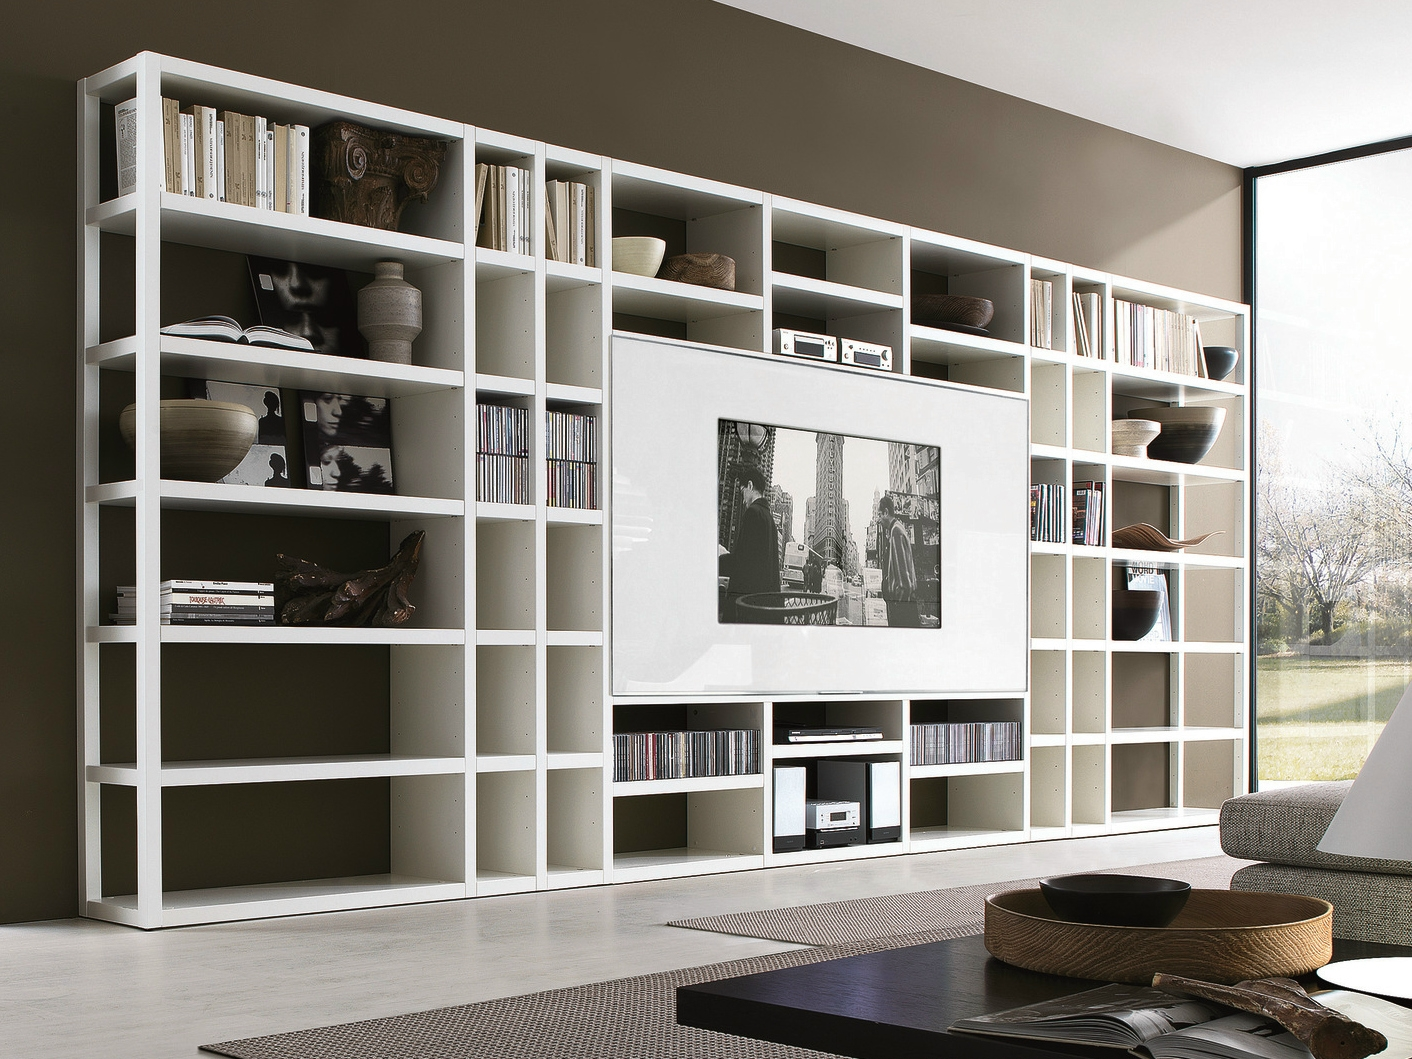 Tv Wall Systems Archiproducts Pertaining To Tv Book Case (View 5 of 14)